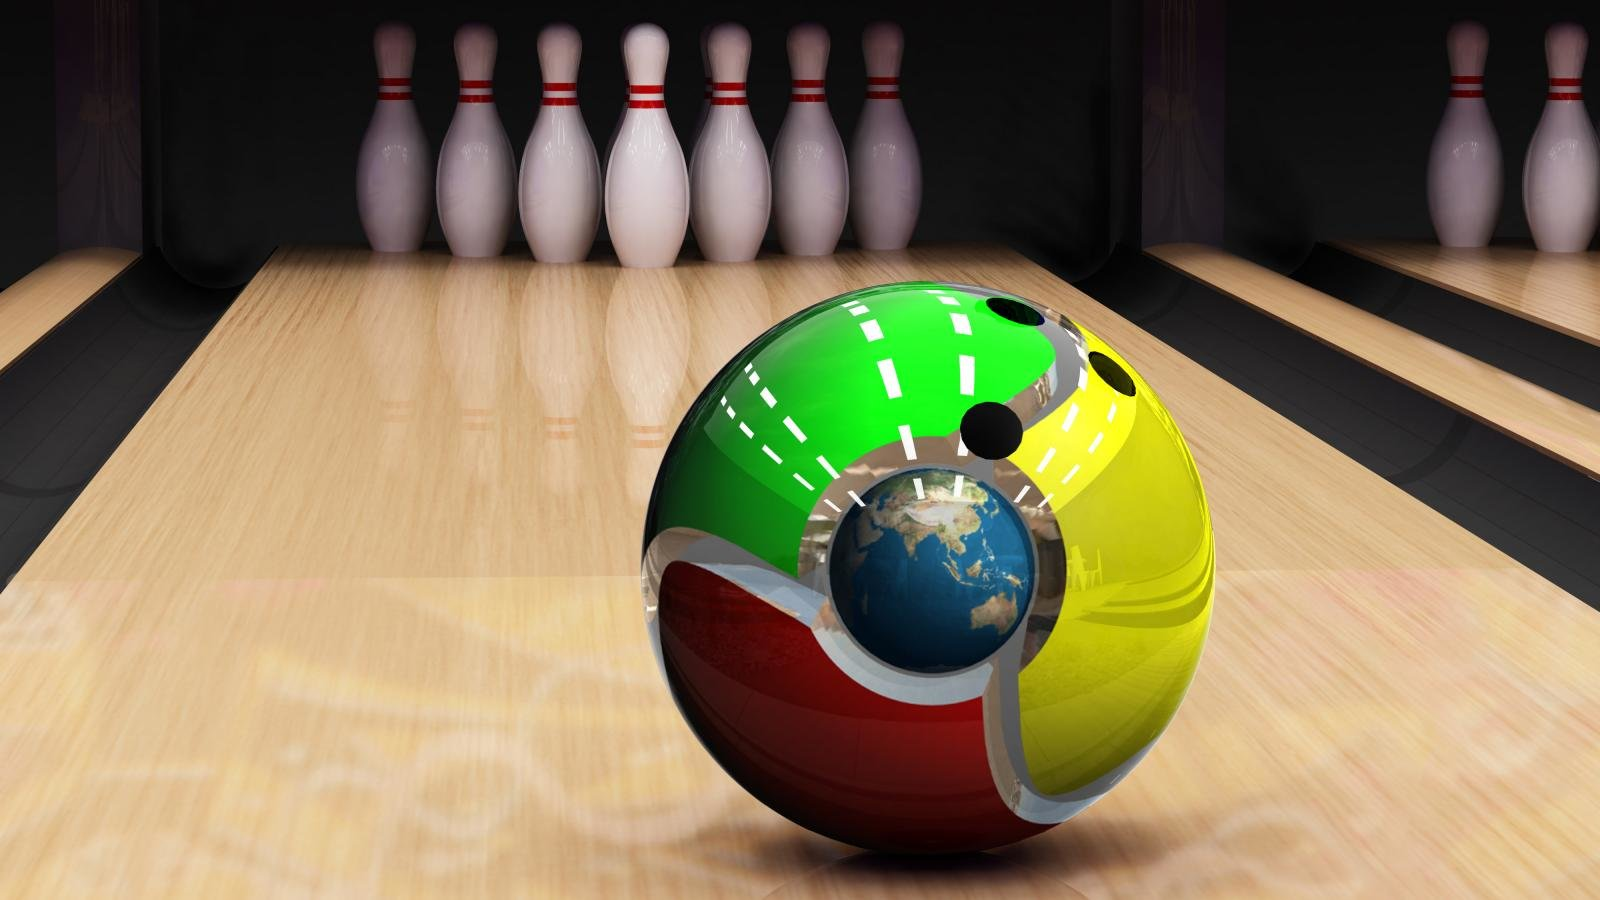 Download hd 1600x900 Bowling computer wallpaper ID:247059 for free